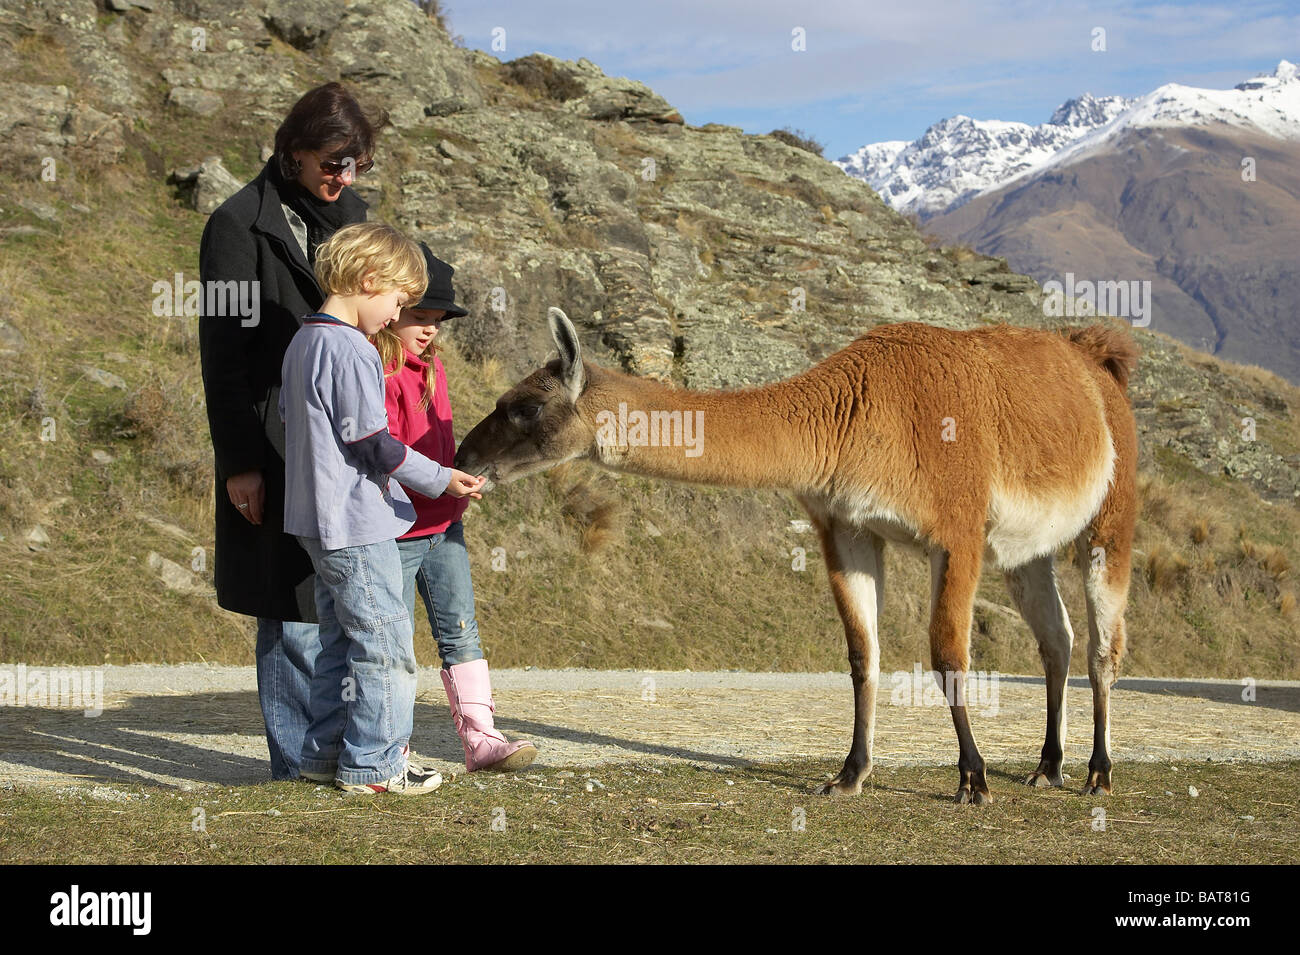 Feeding the Llama Deer Park Heights Queenstown South Island New Zealand - Stock Image